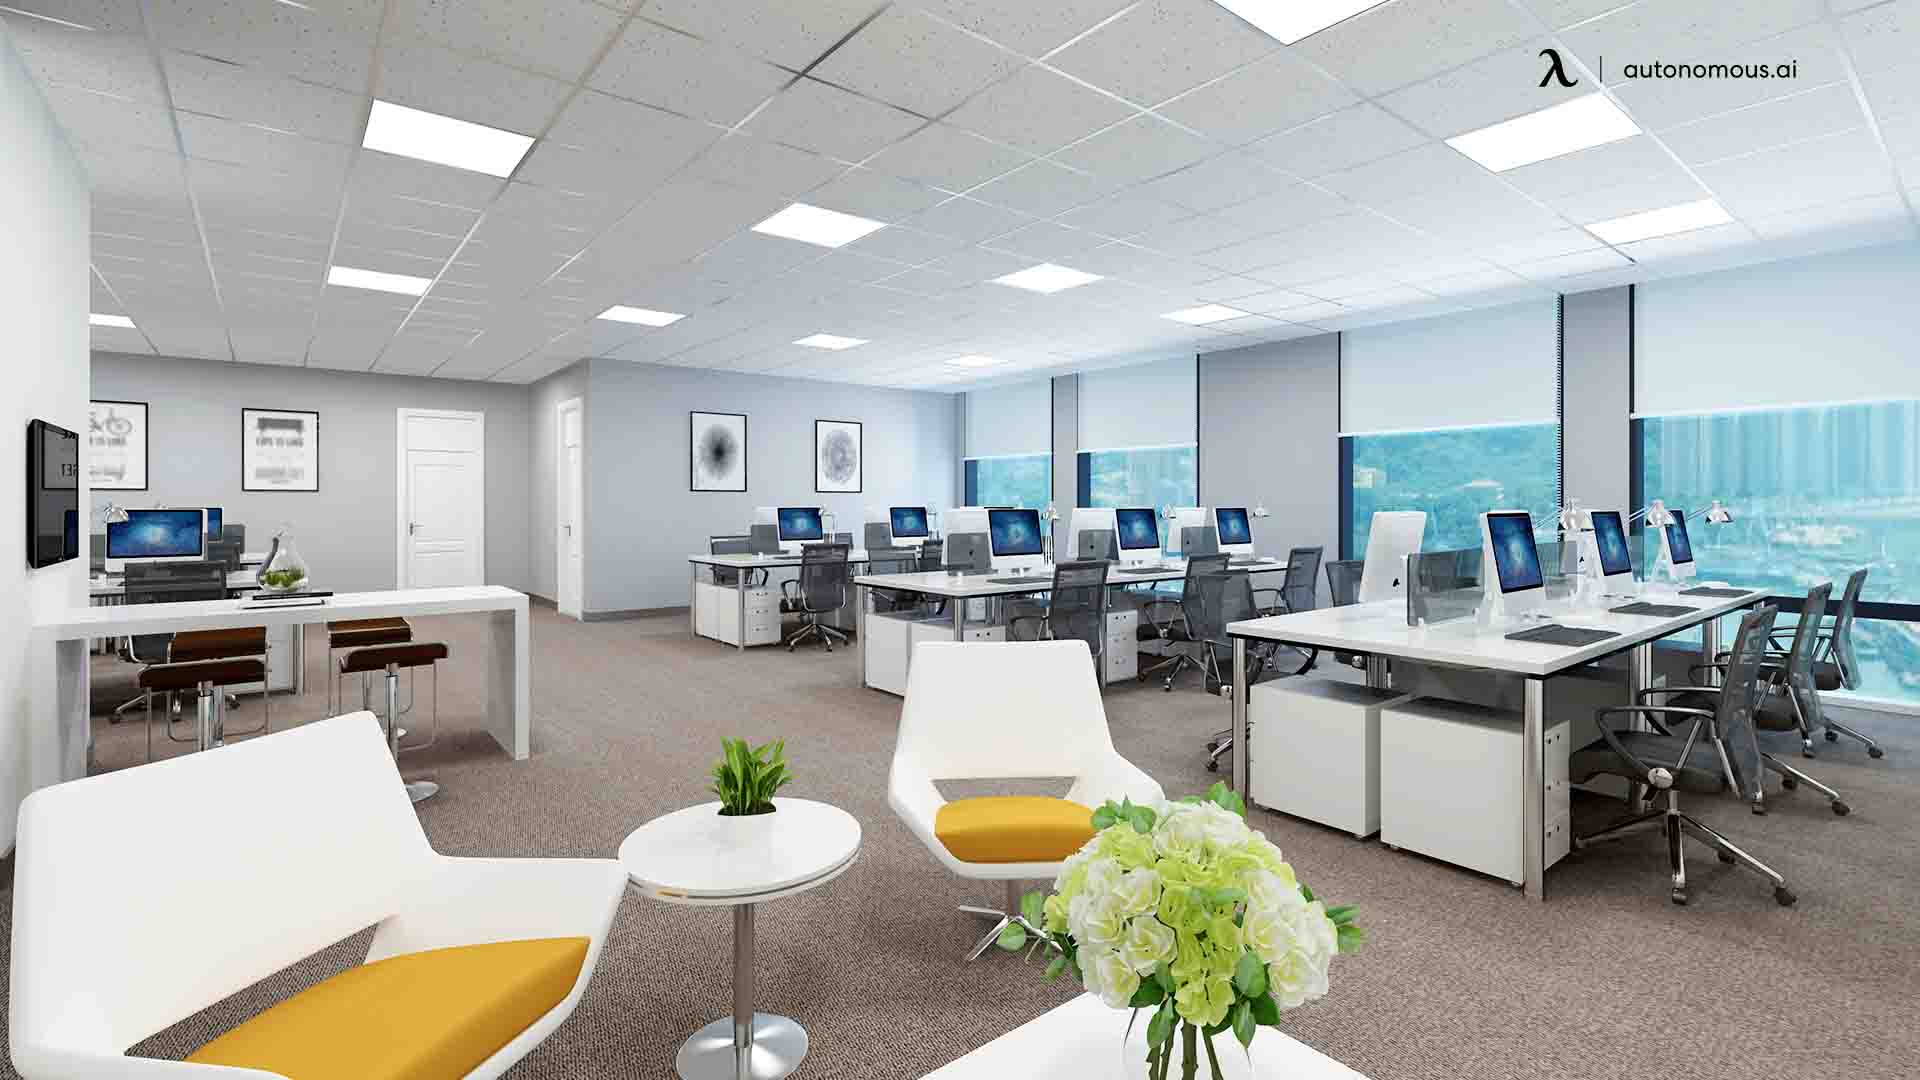 How does a Flexible Office Design